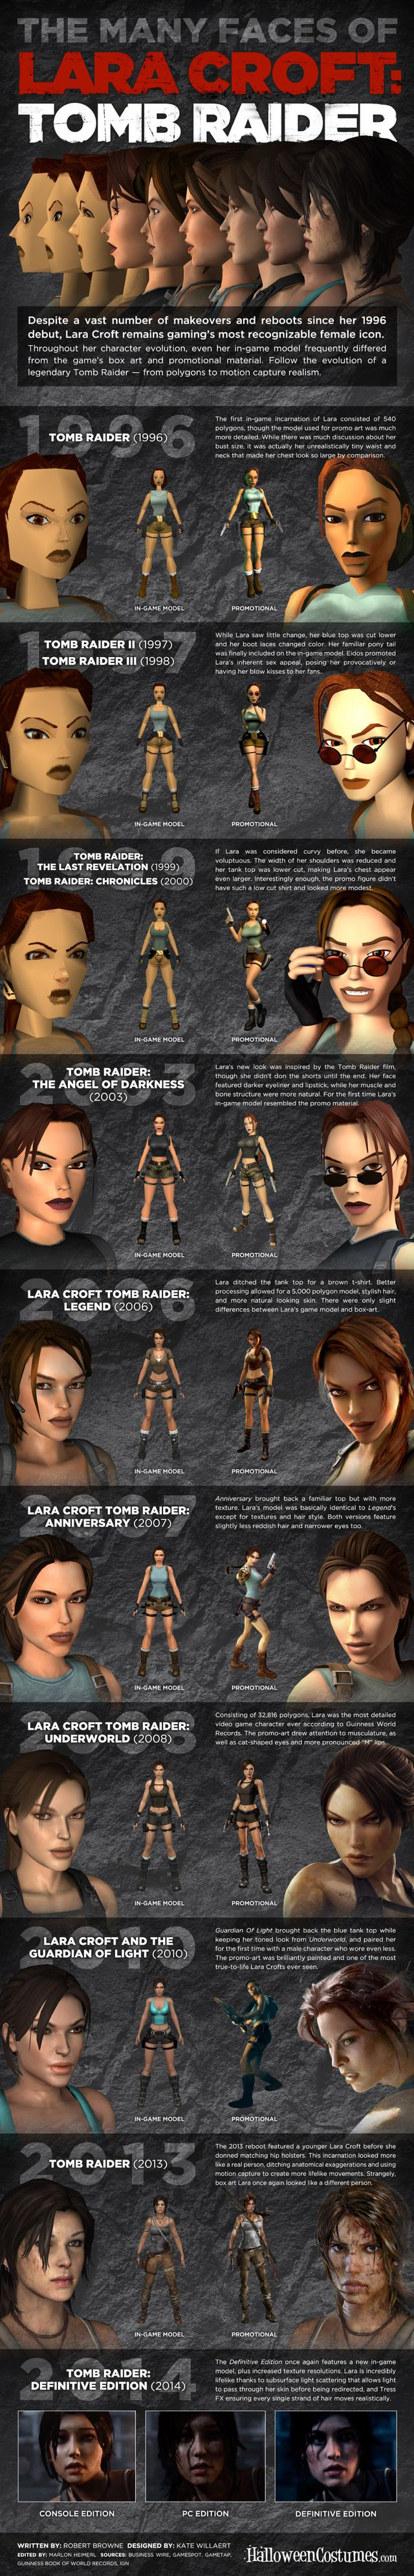 How 'Tomb Raider' Star Lara Croft Has Evolved Since 1996 - and keeps getting hotter